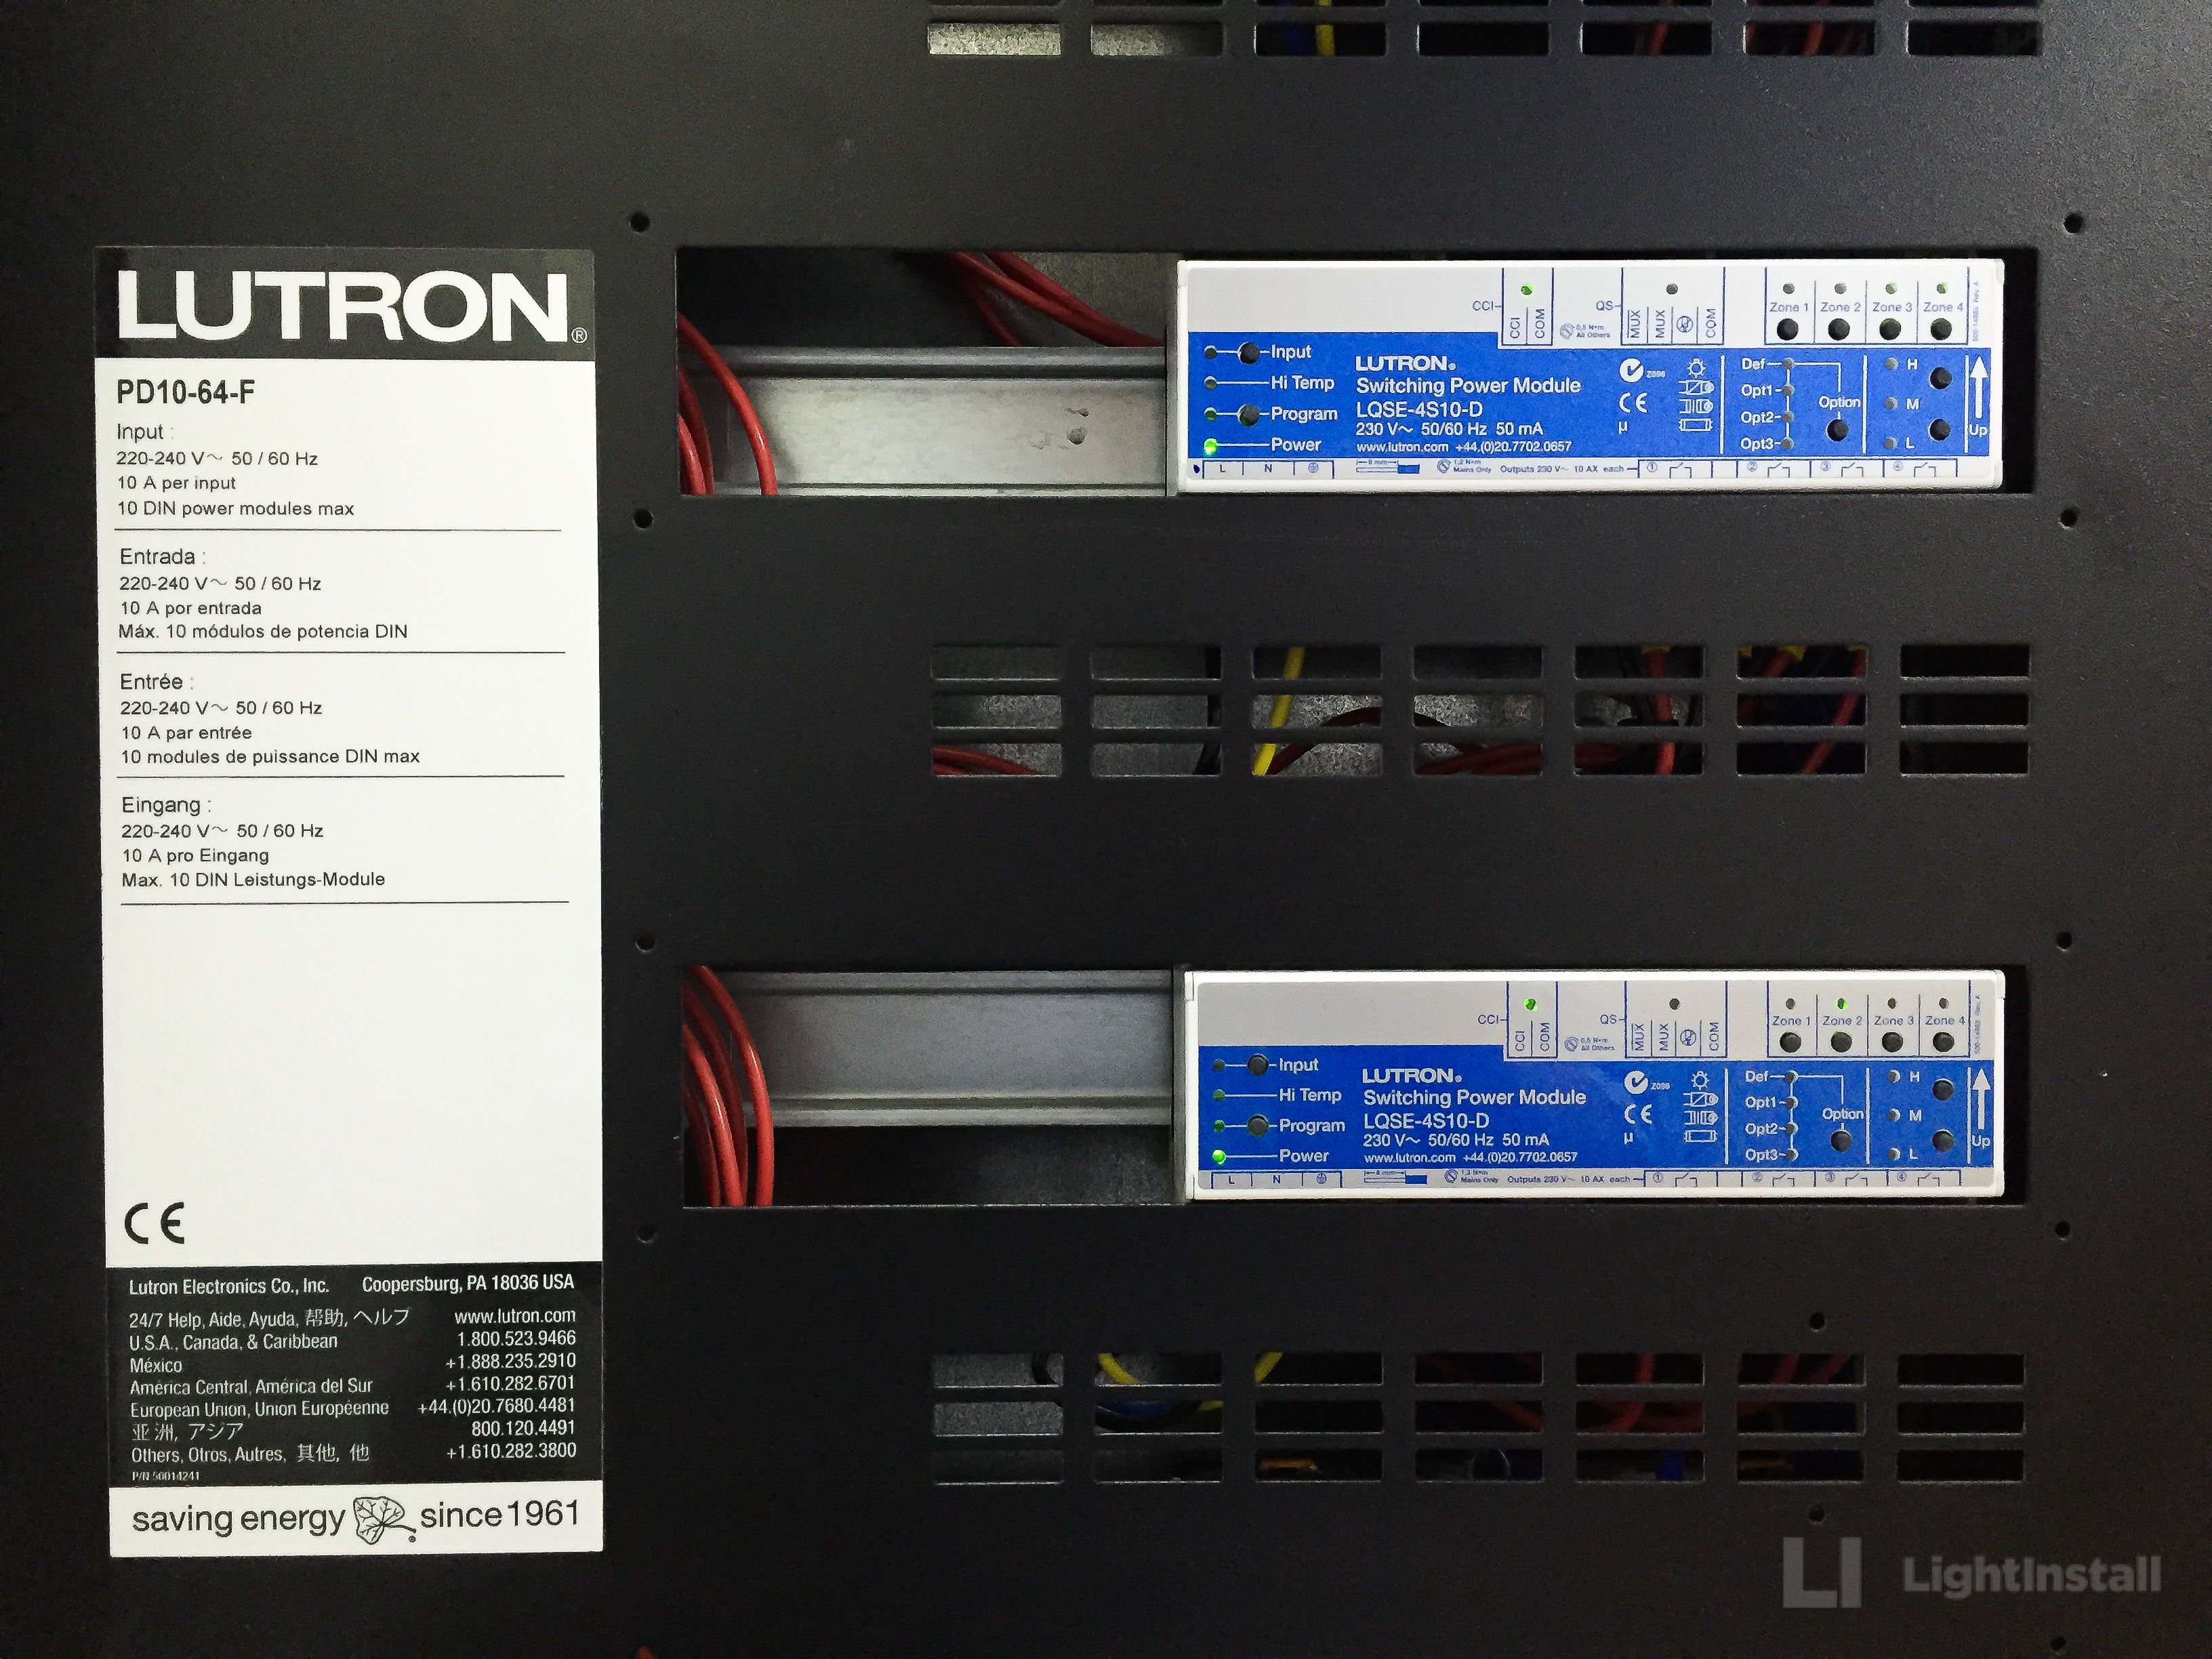 lightinstall #lutron #panel #dpm #homecontrol #design